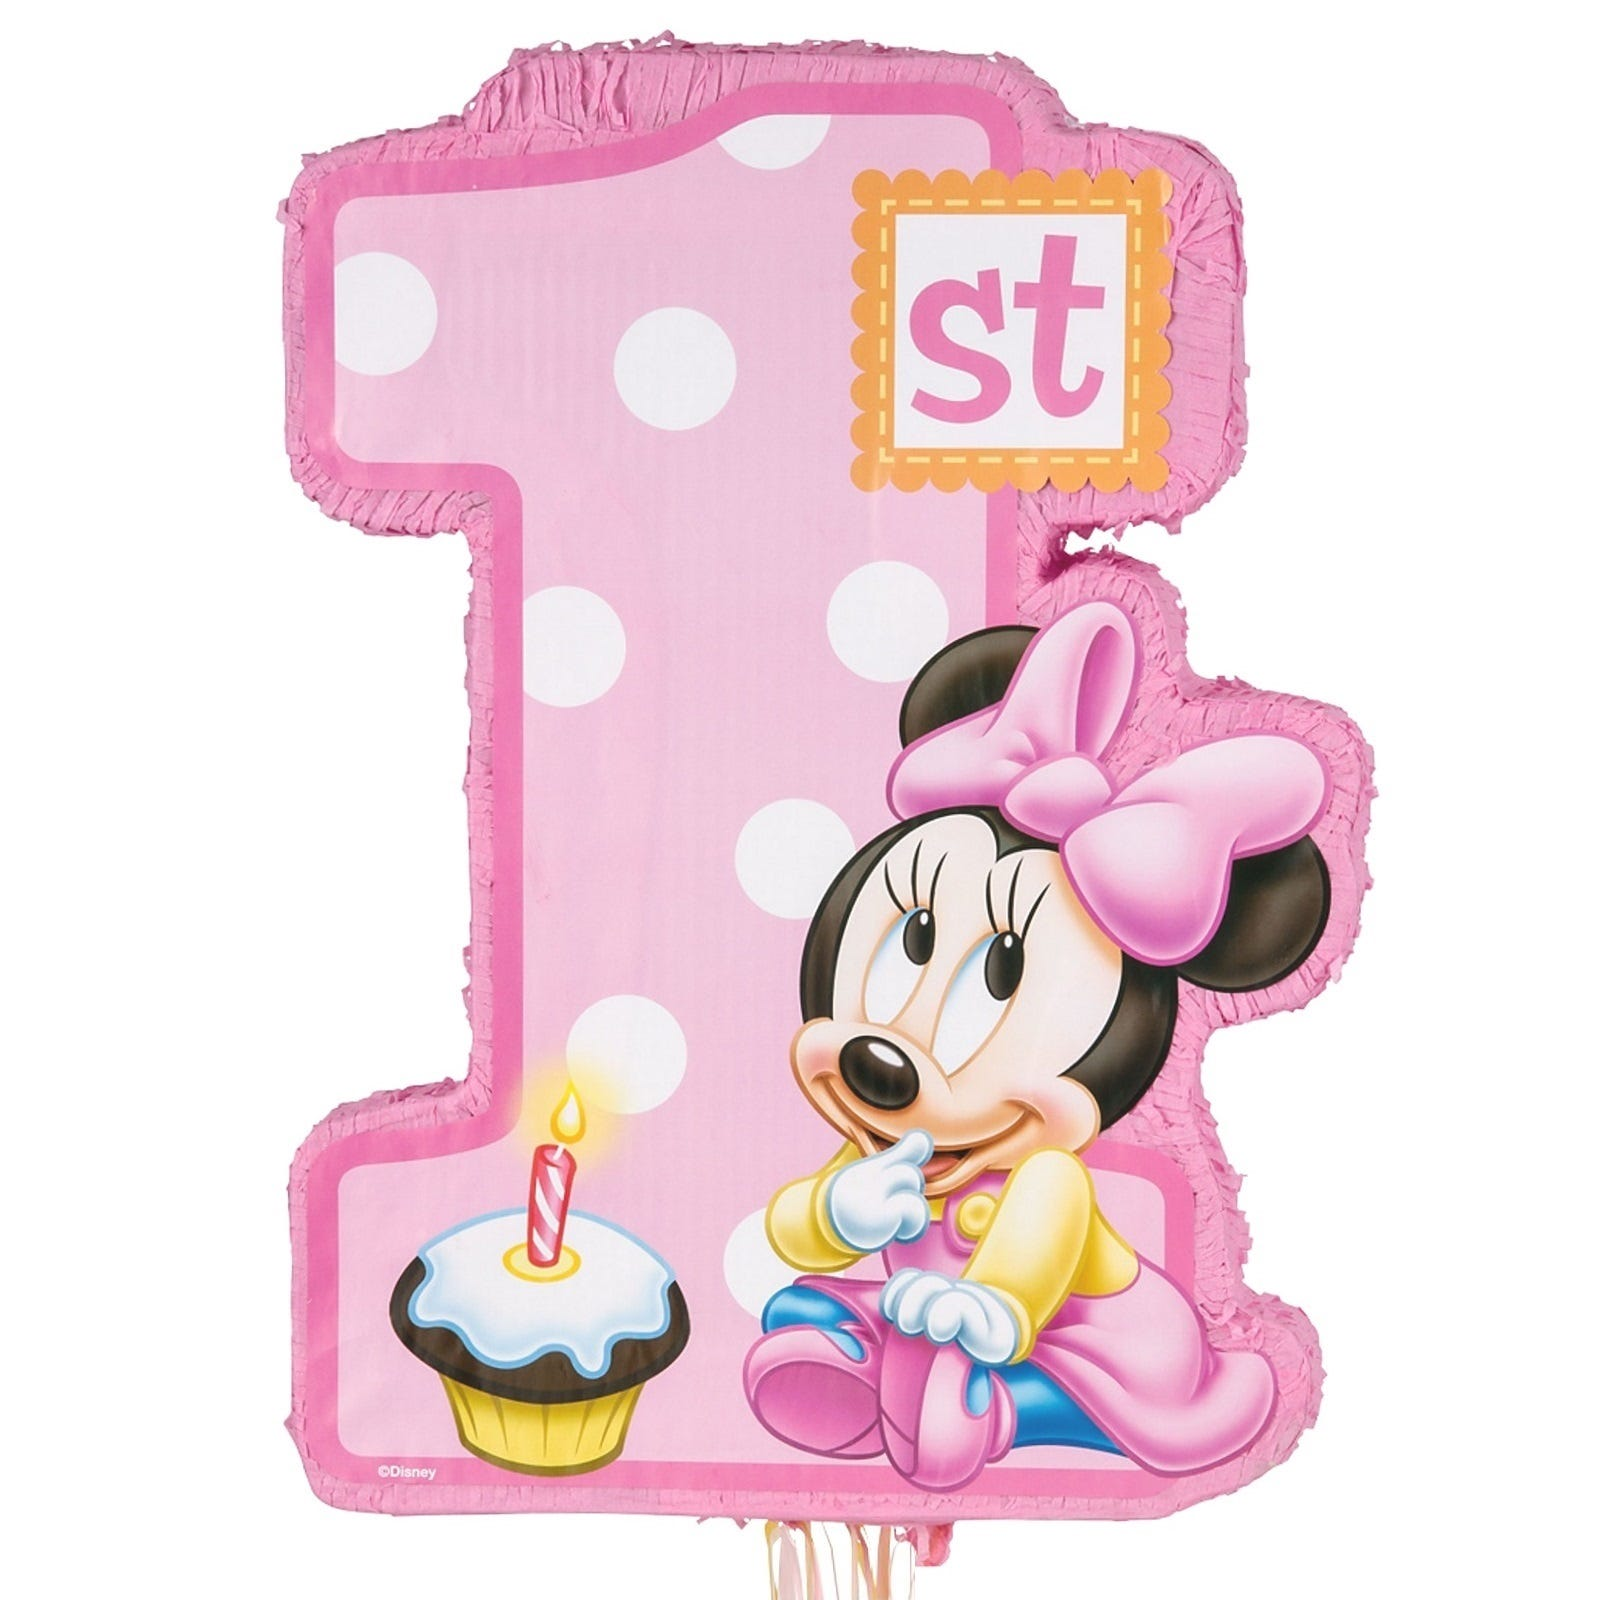 Minnie Mouse 1st Birthday: MINNIE MOUSE 1ST BIRTHDAY PARTY SUPPLIES NUMBER 1 PULL